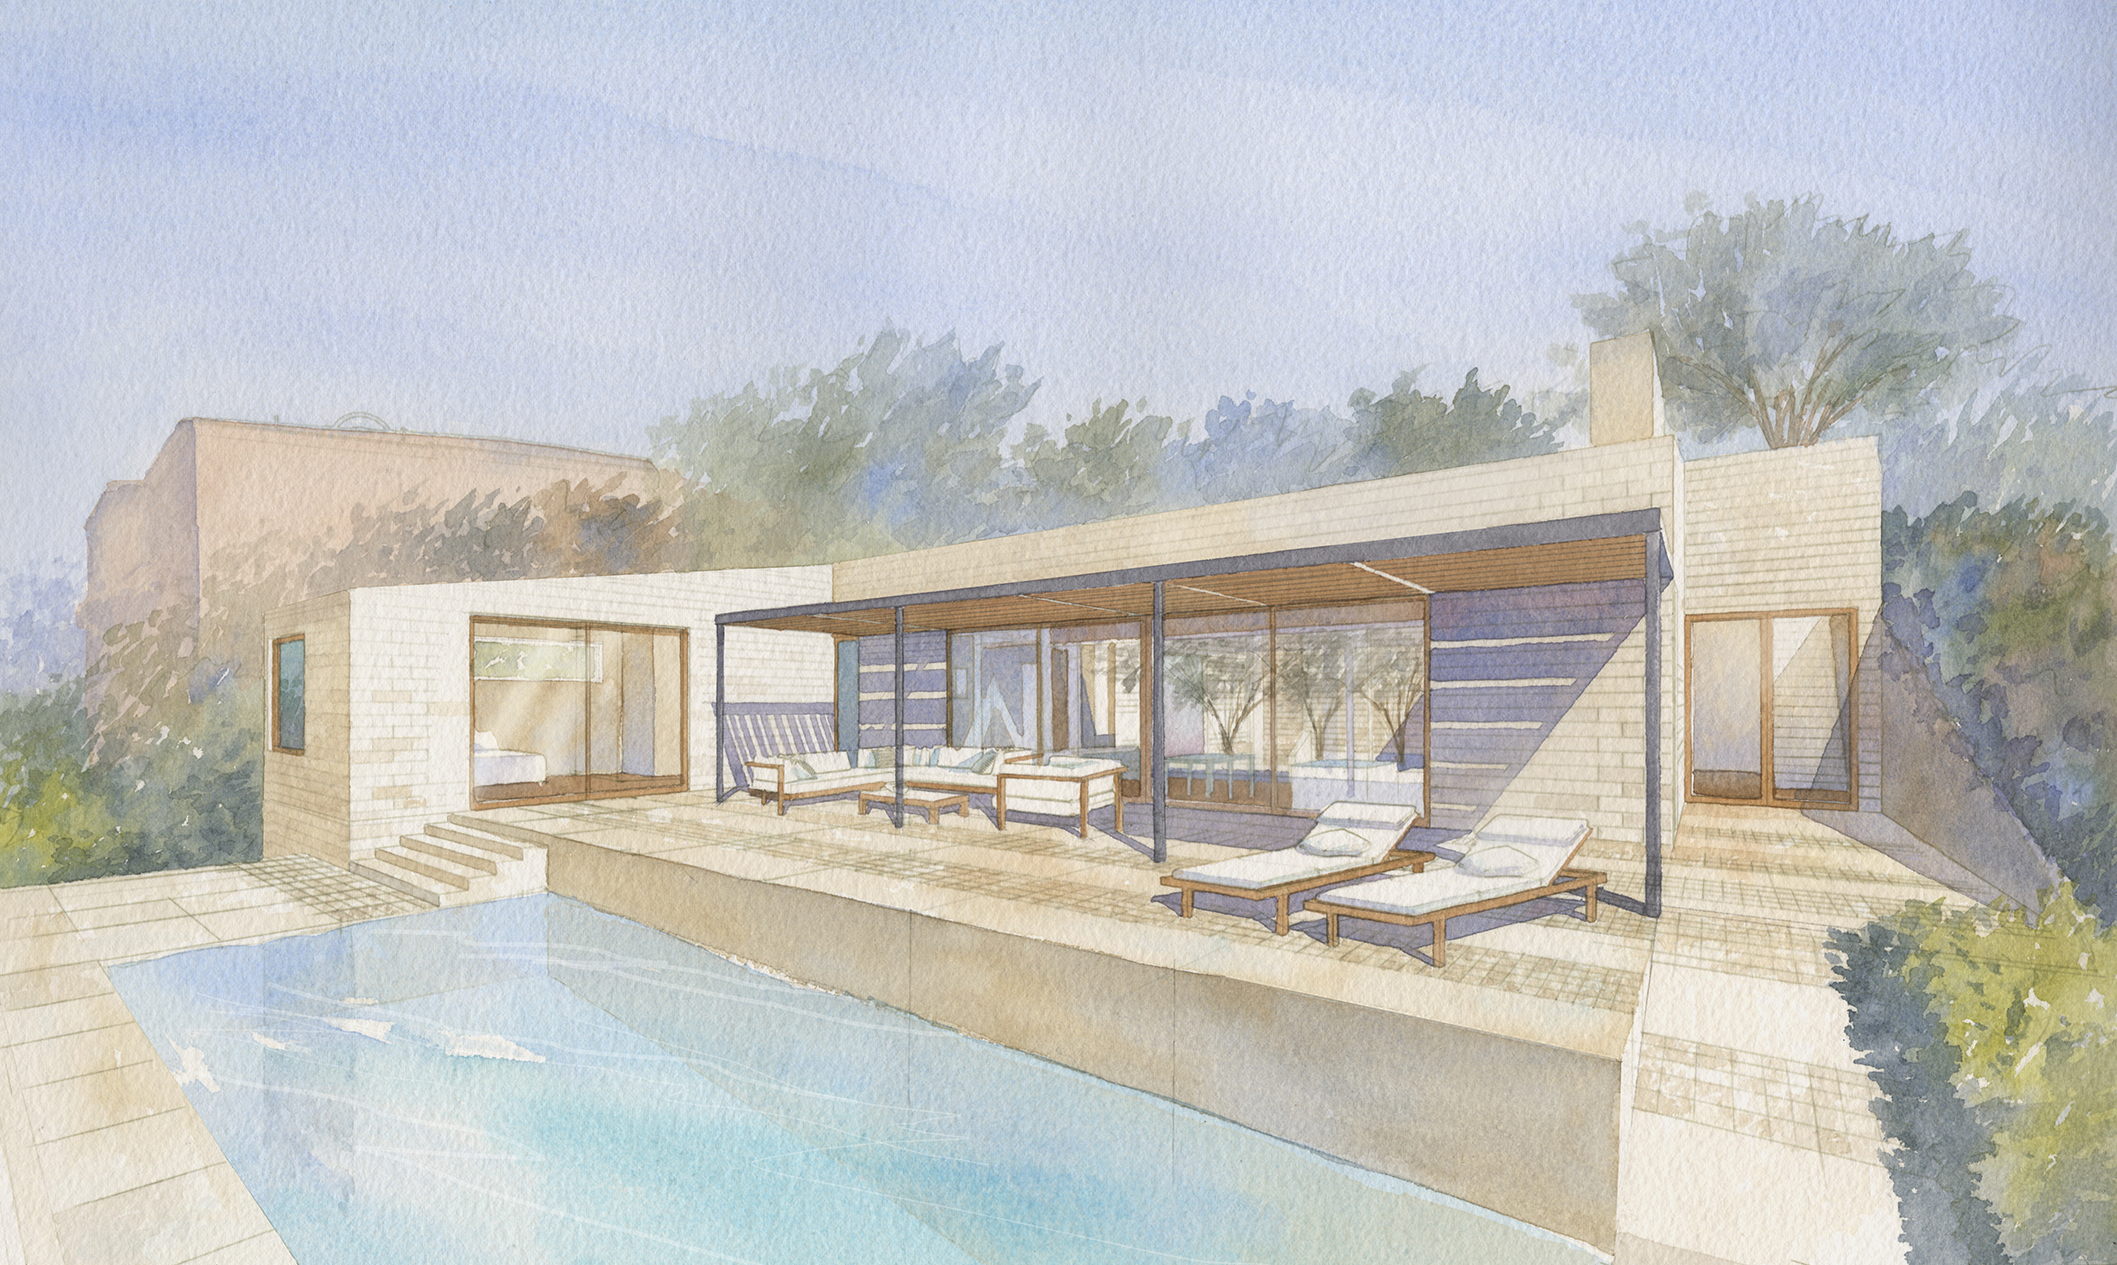 Silverado home in Napa Valley watercolor of outside view of house with pool